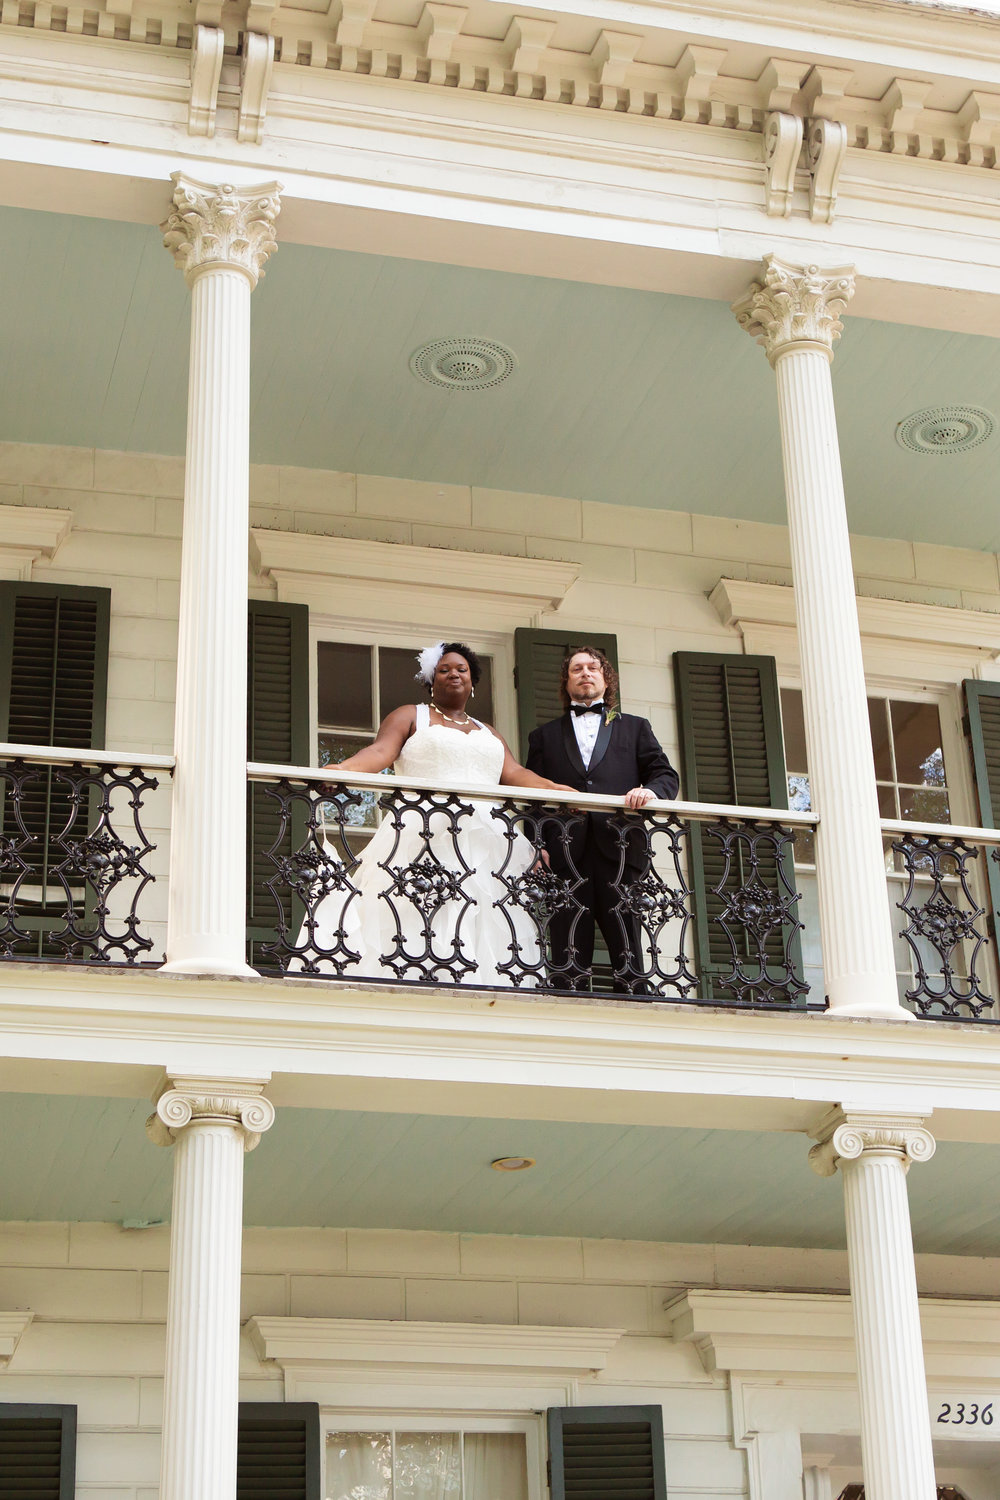 See more of Rebeca and Brian's wedding at their hashtag #hantoineforever on Instagram.